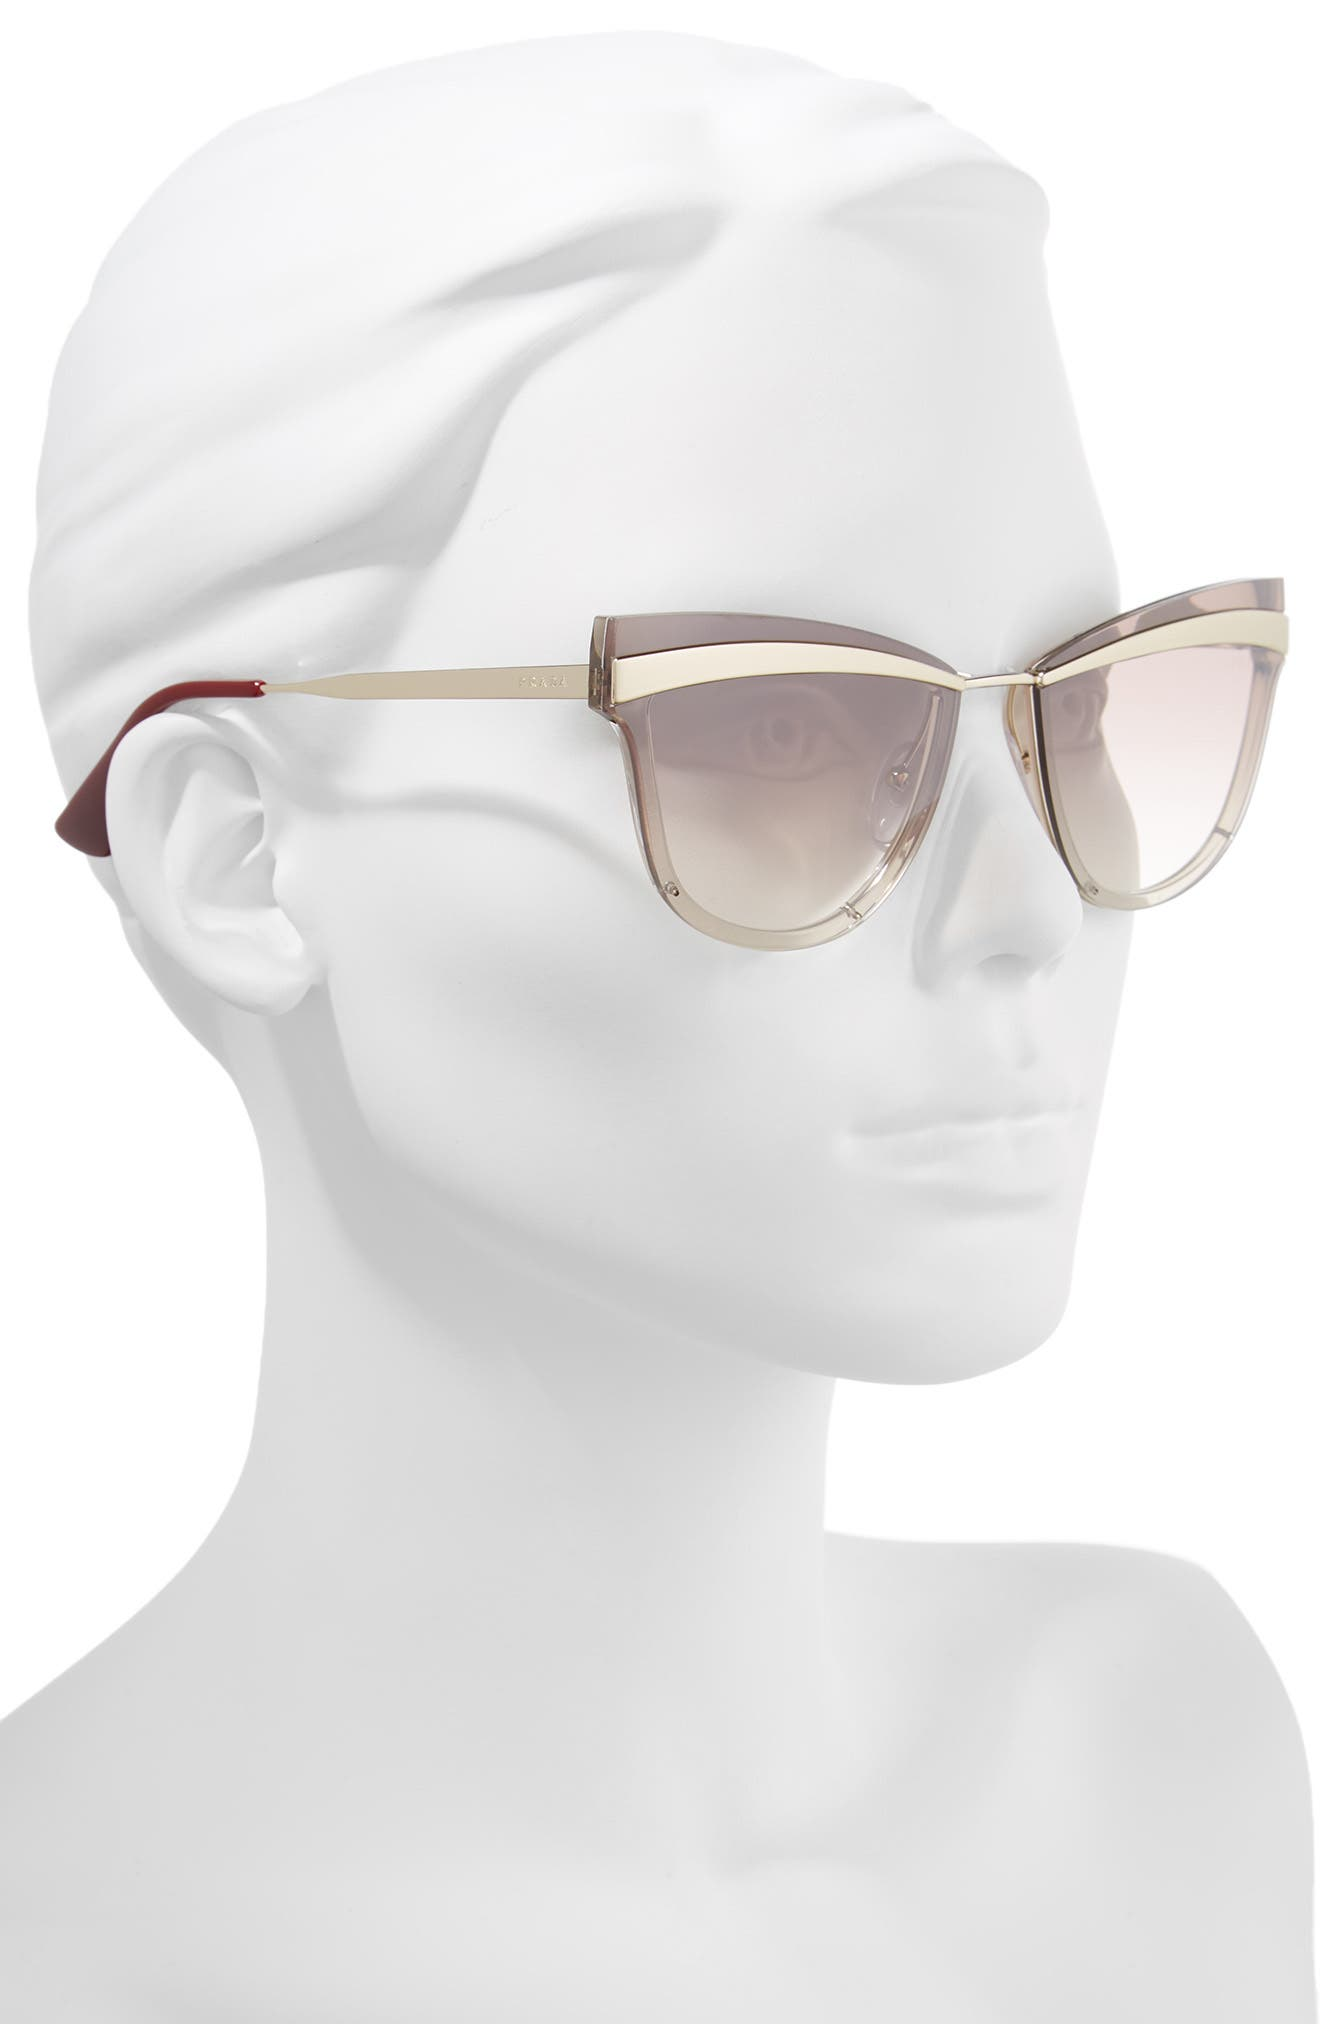 Cinema Evolution 65mm Cat Eye Sunglasses,                             Alternate thumbnail 2, color,                             BEIGE GRADIENT MIRROR